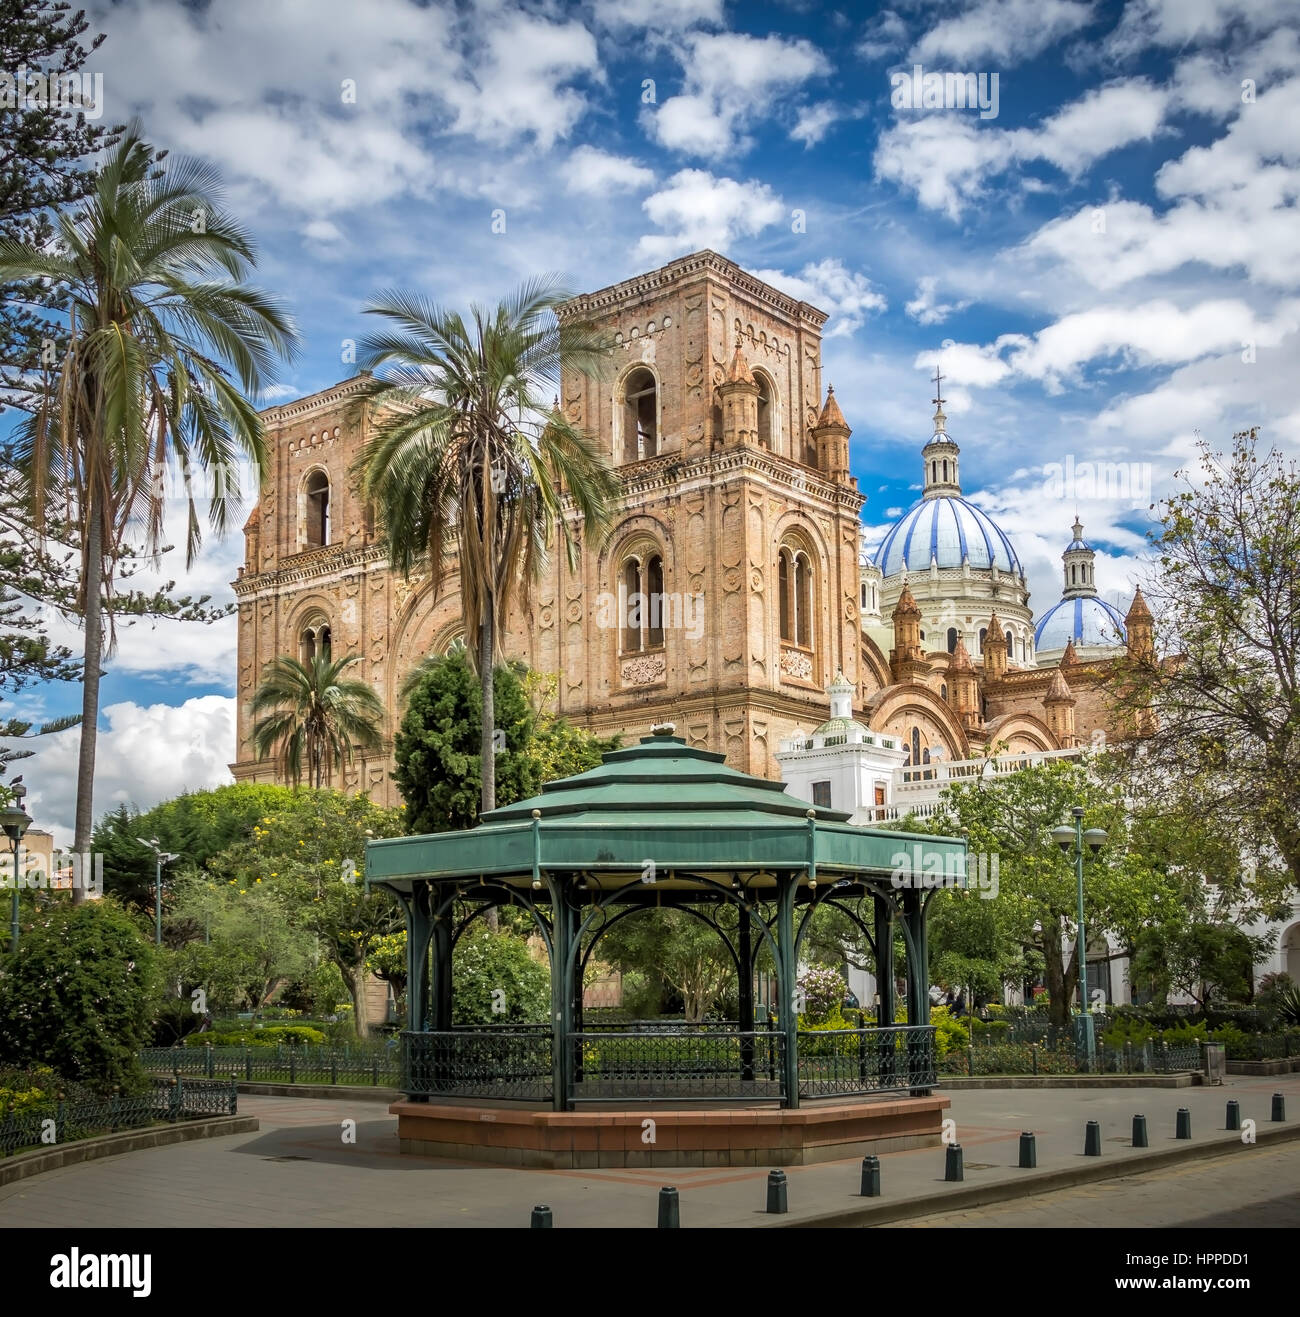 Park Calderon and Inmaculada Concepcion Cathedral - Cuenca, Ecuador - Stock Image